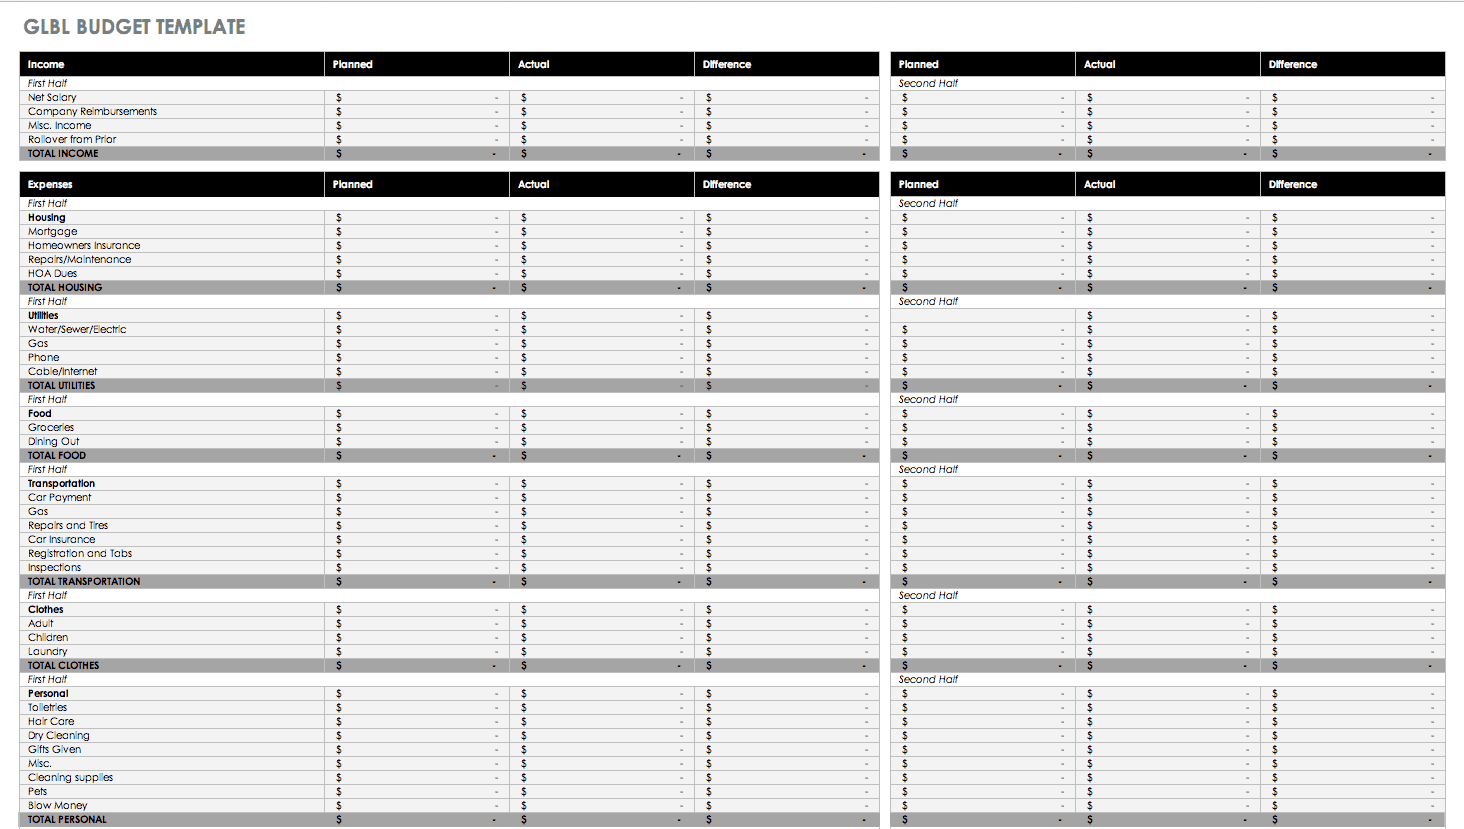 Free budget templates in excel for any use.